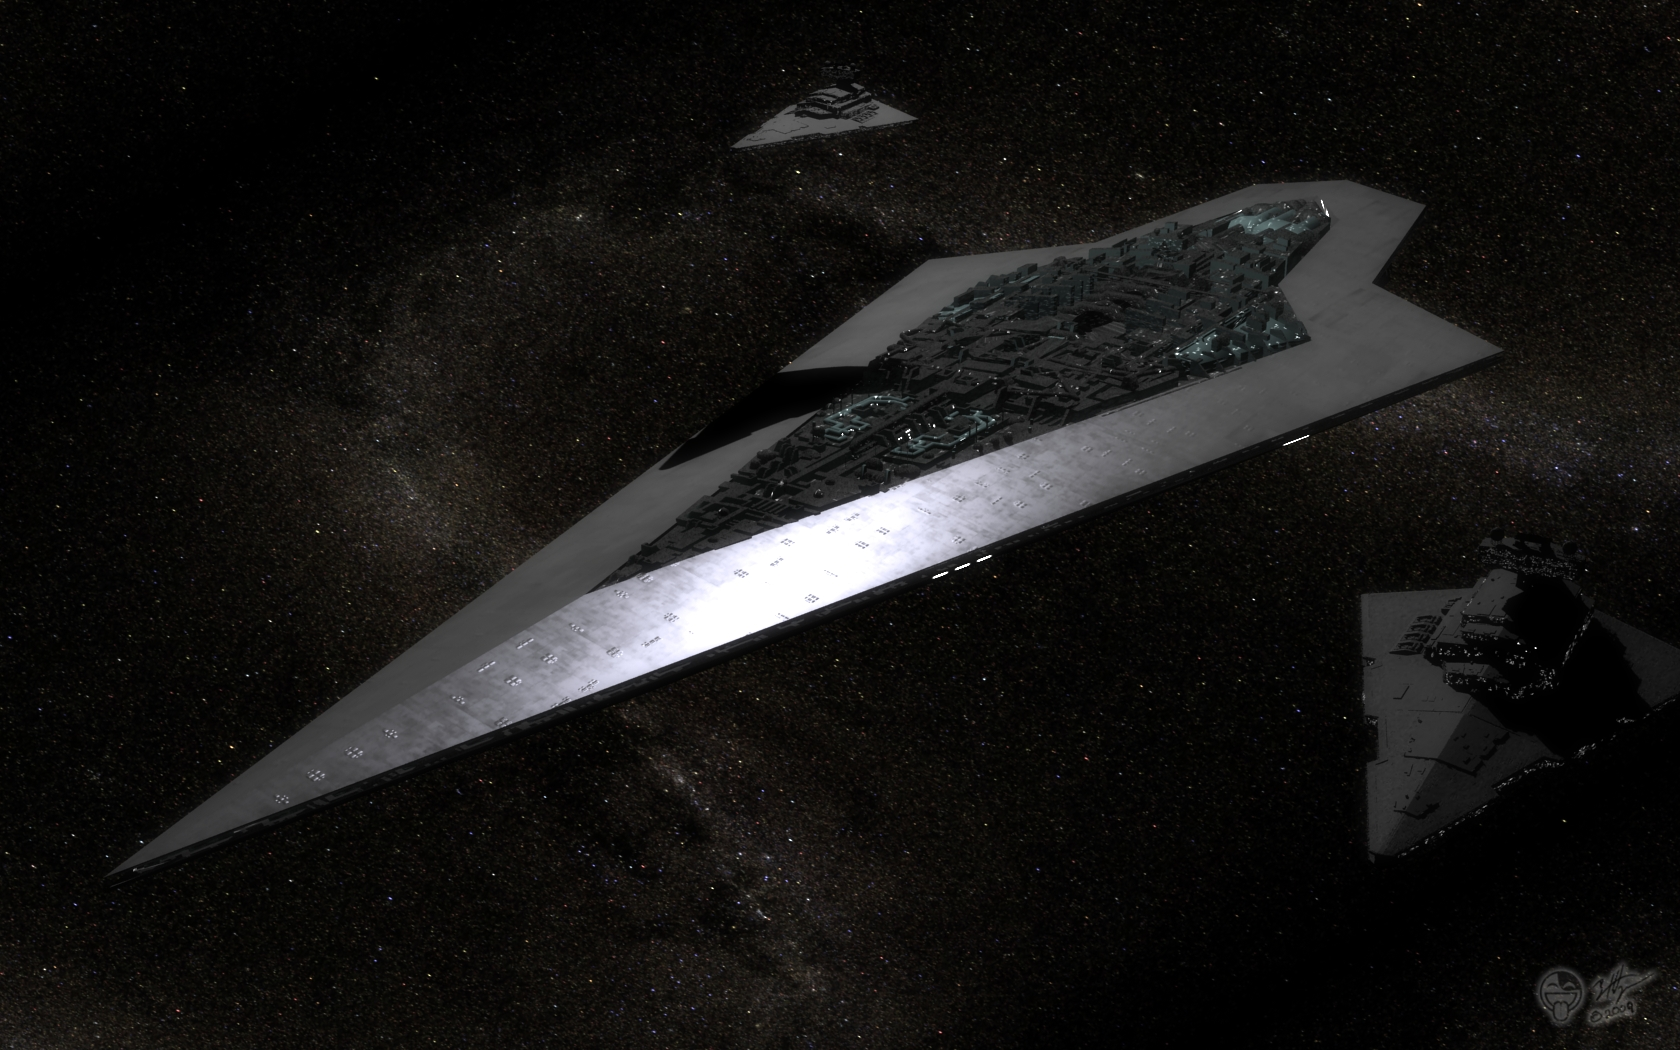 Science-Fiction - Star Wars  - Super Star Destroyer - Executor Hintergrundbild